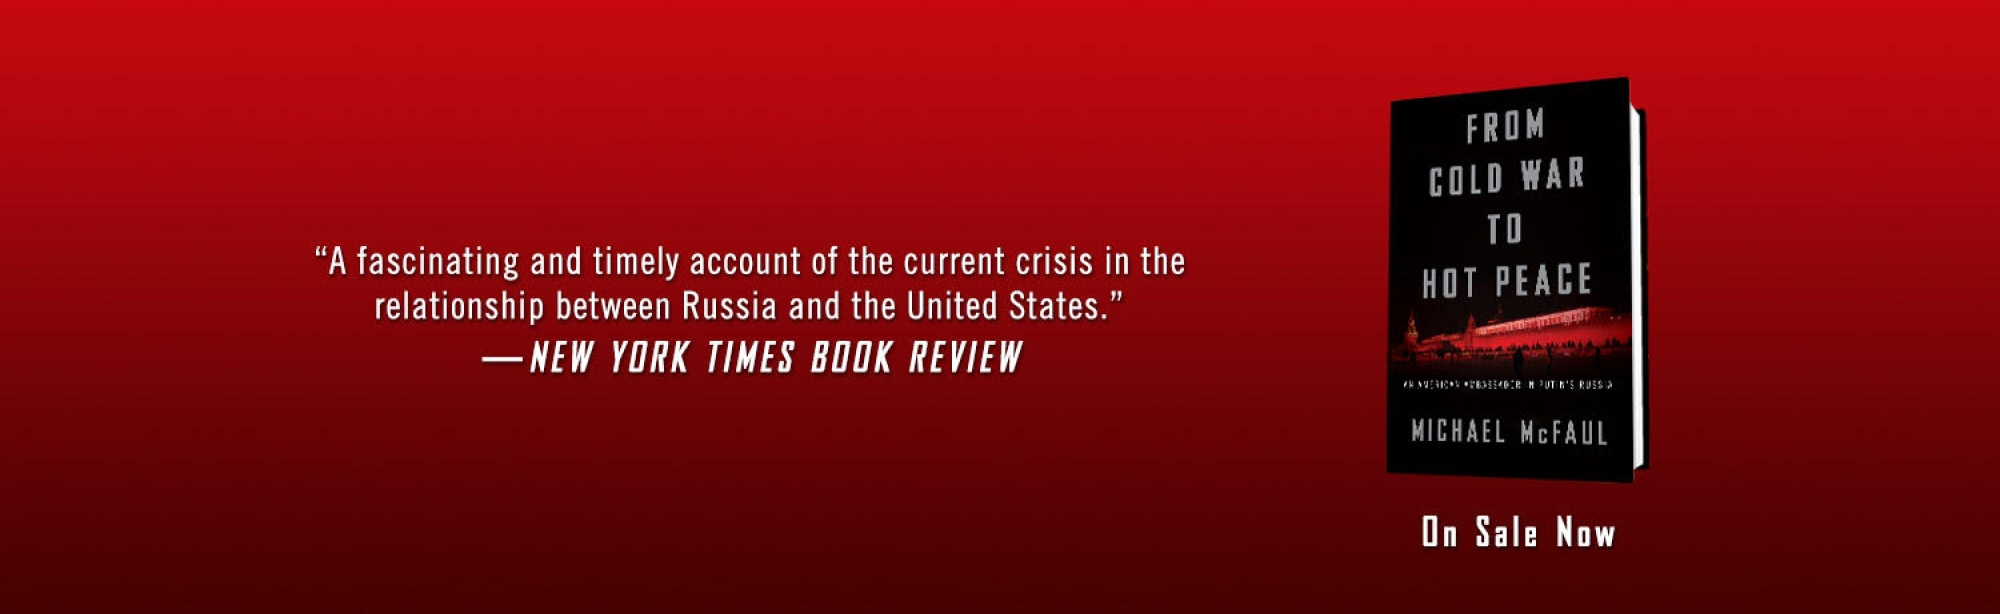 McFaul Book Banner